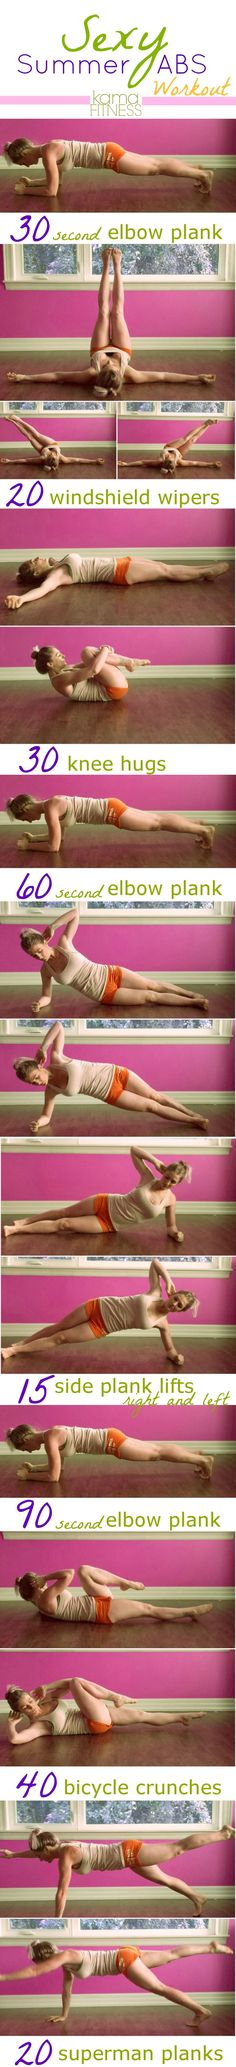 Summer will be here before you know it - get ready with these great exercises!